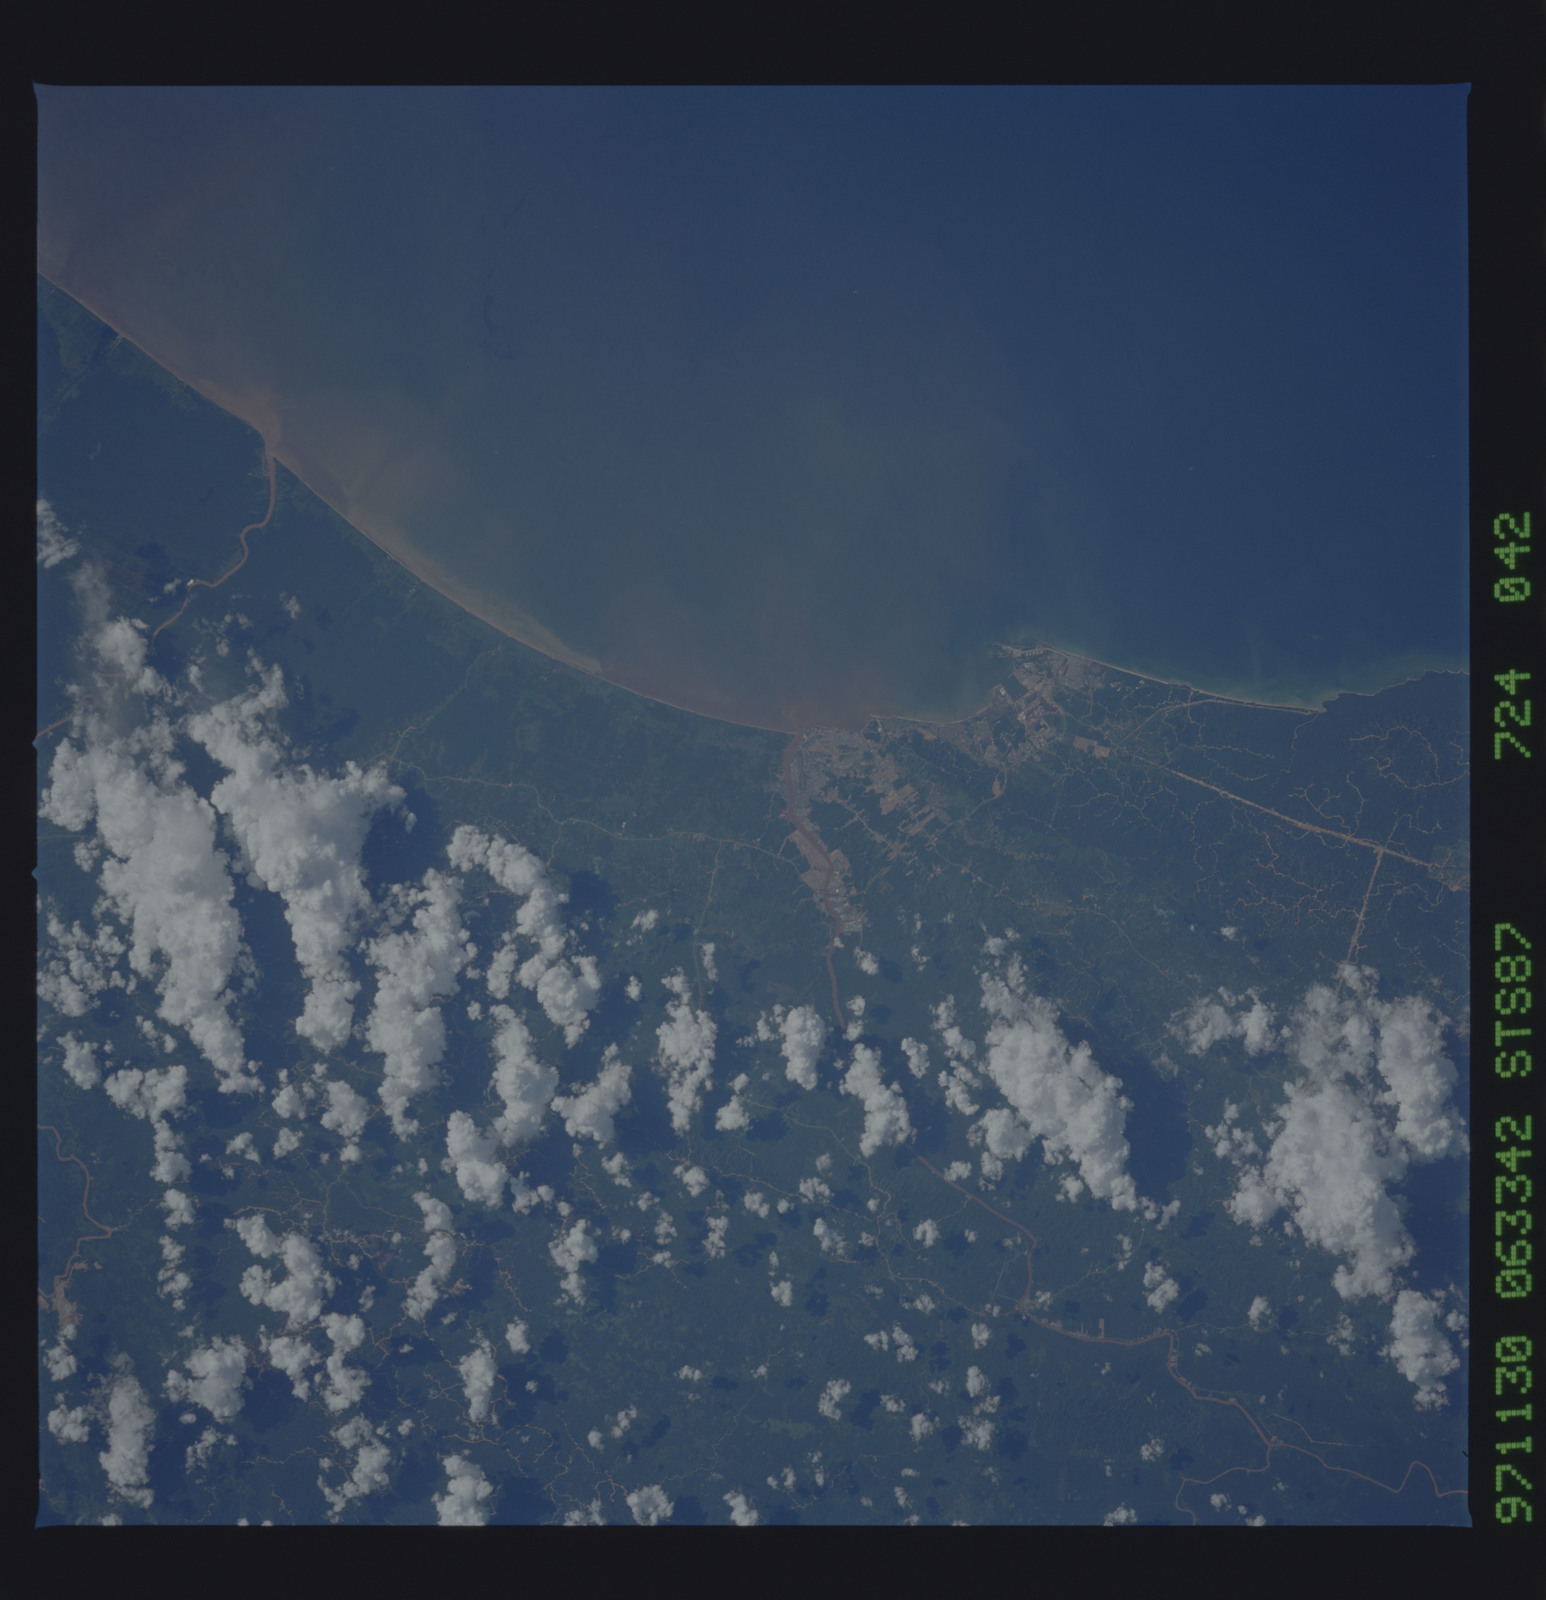 STS087-724-042 - STS-087 - Earth observations taken from shuttle orbiter Columbia during STS-87 mission